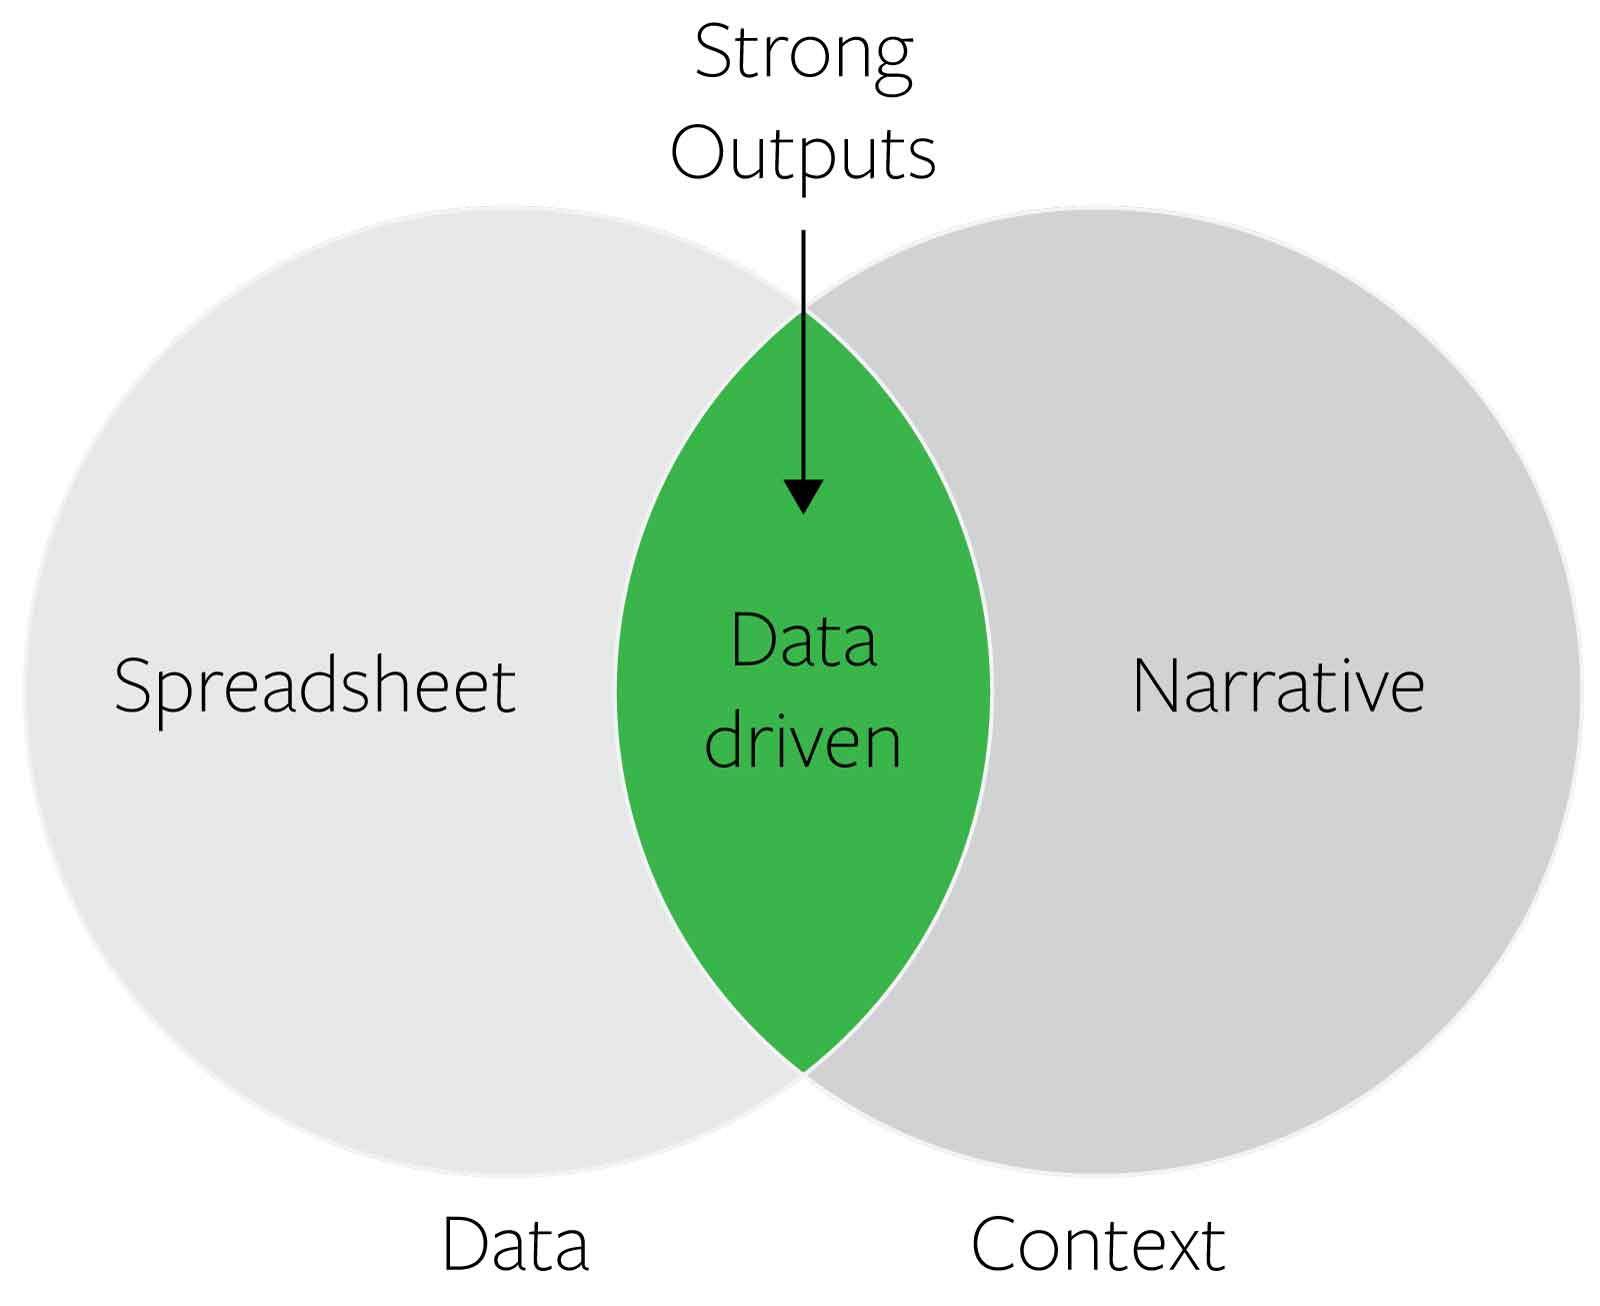 Strong outputs are data-driven